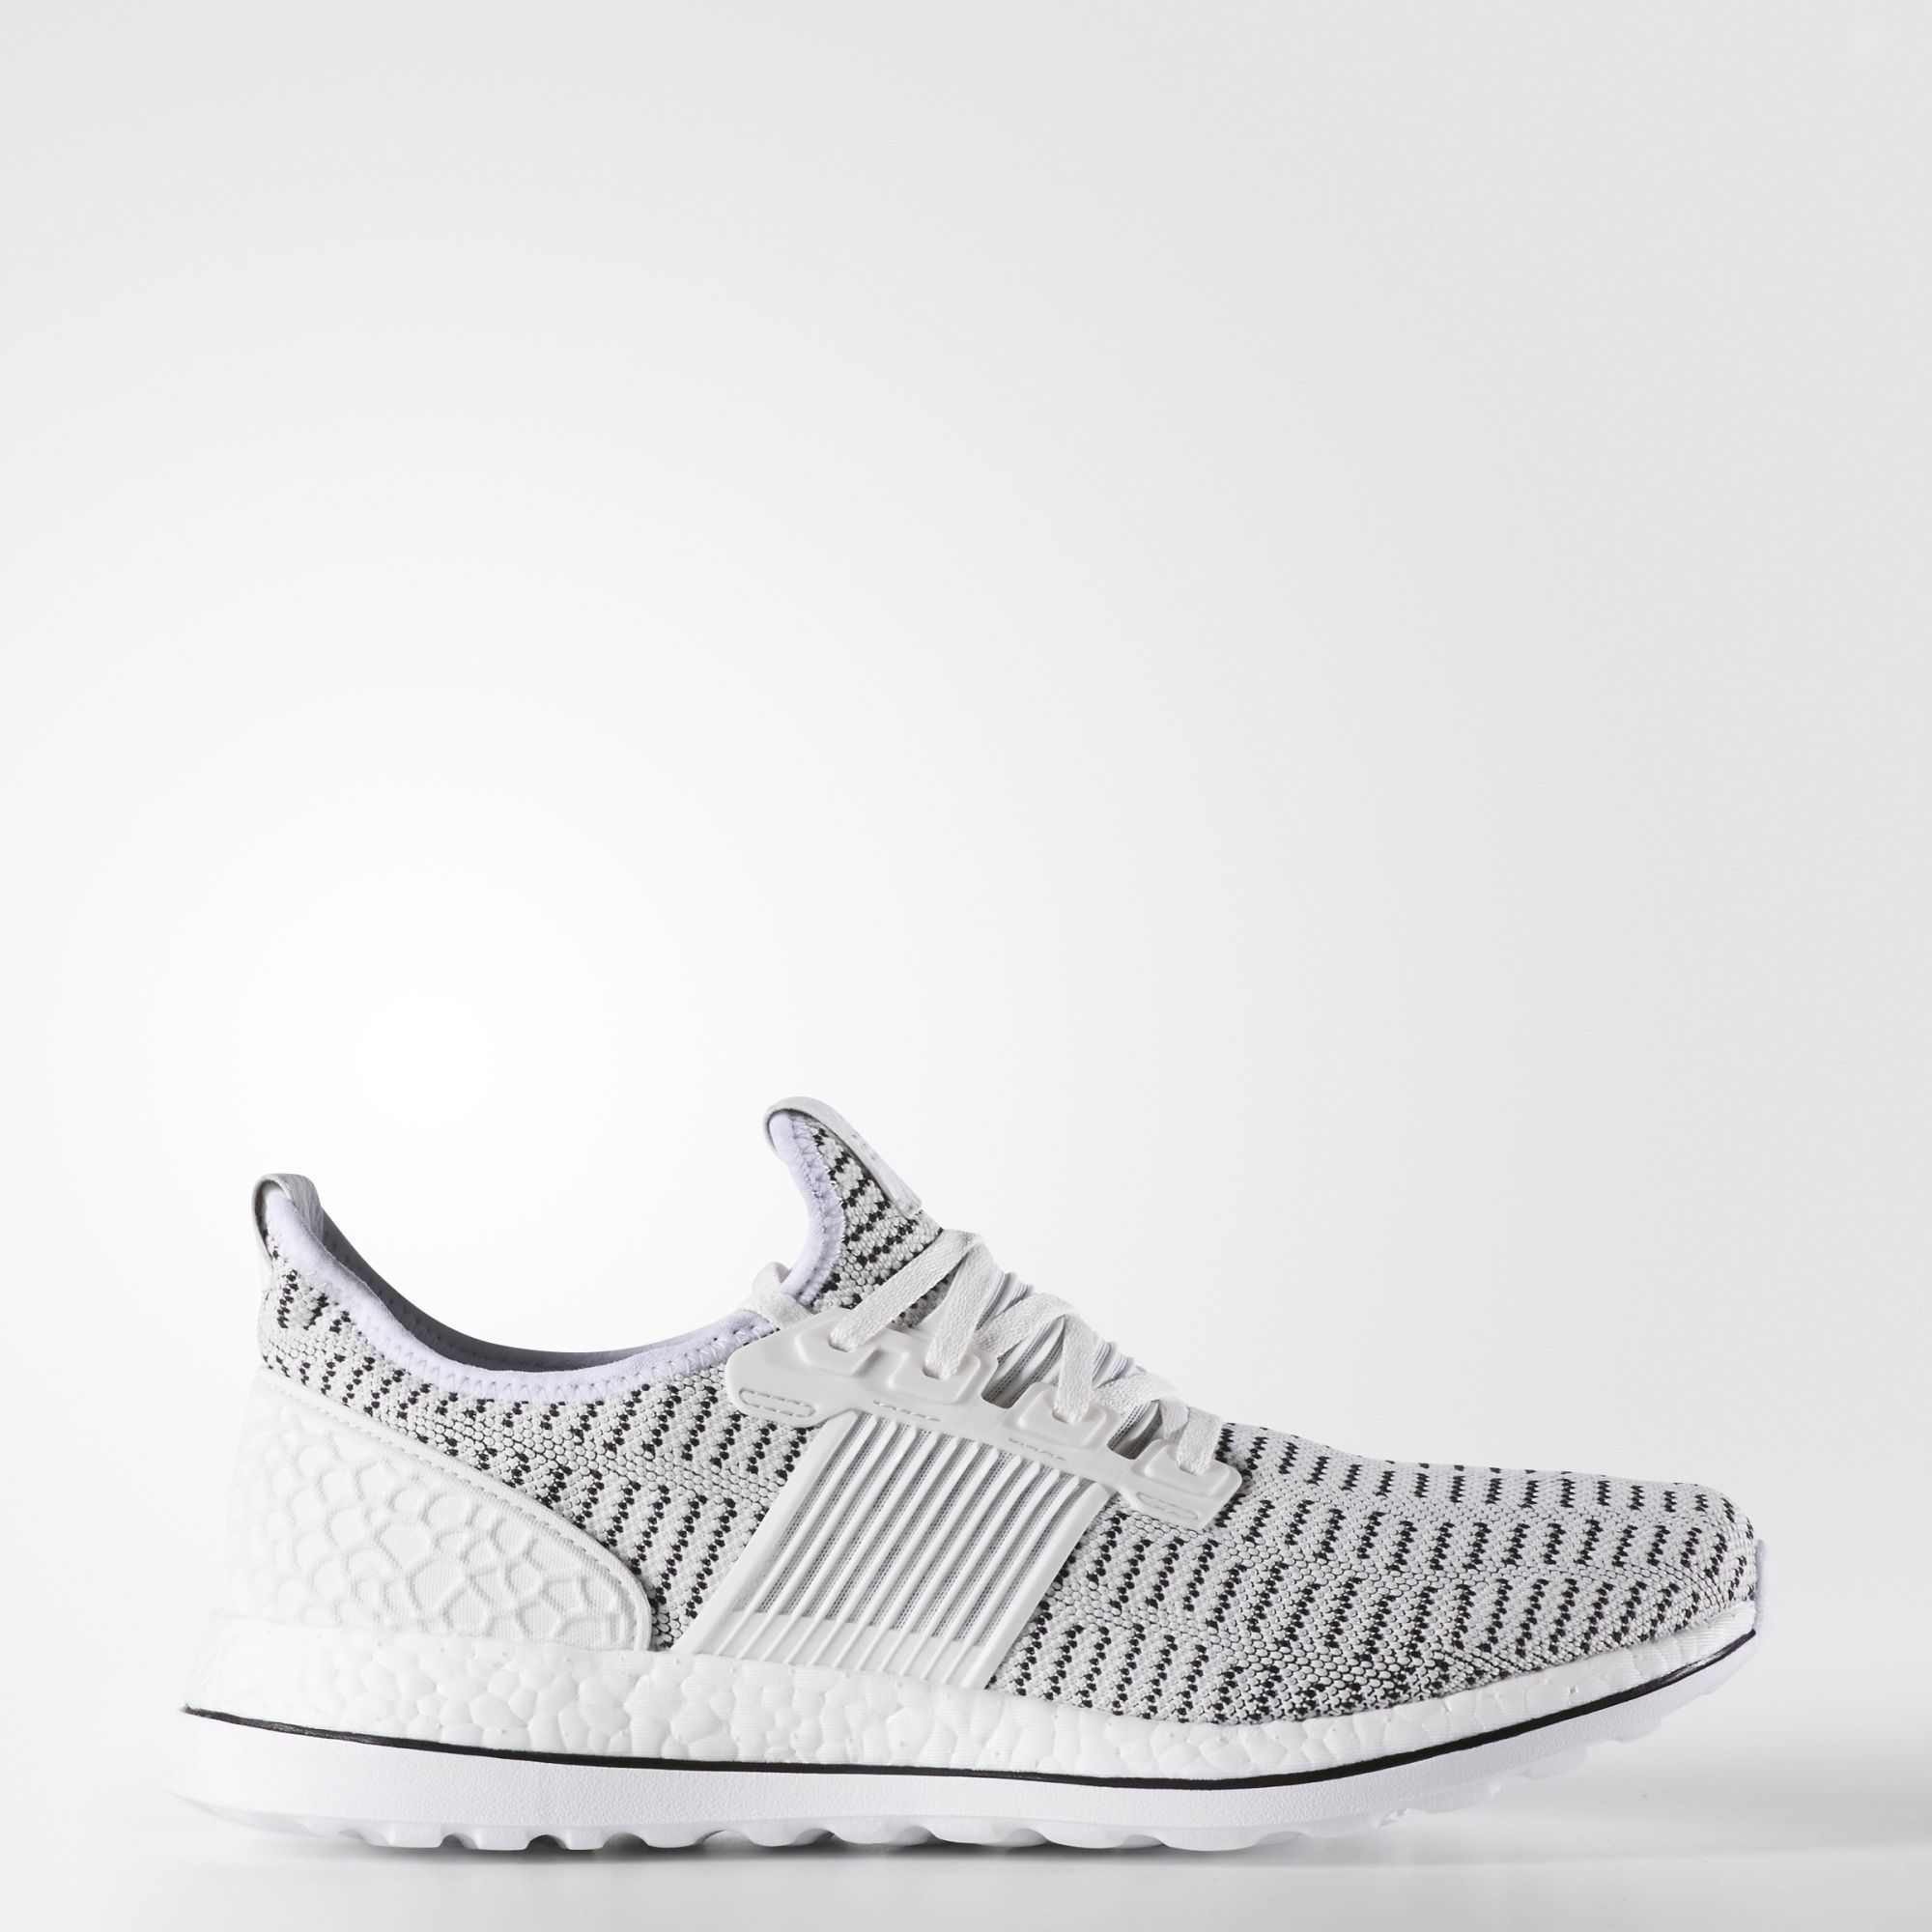 adidas pure boost zg crystal white